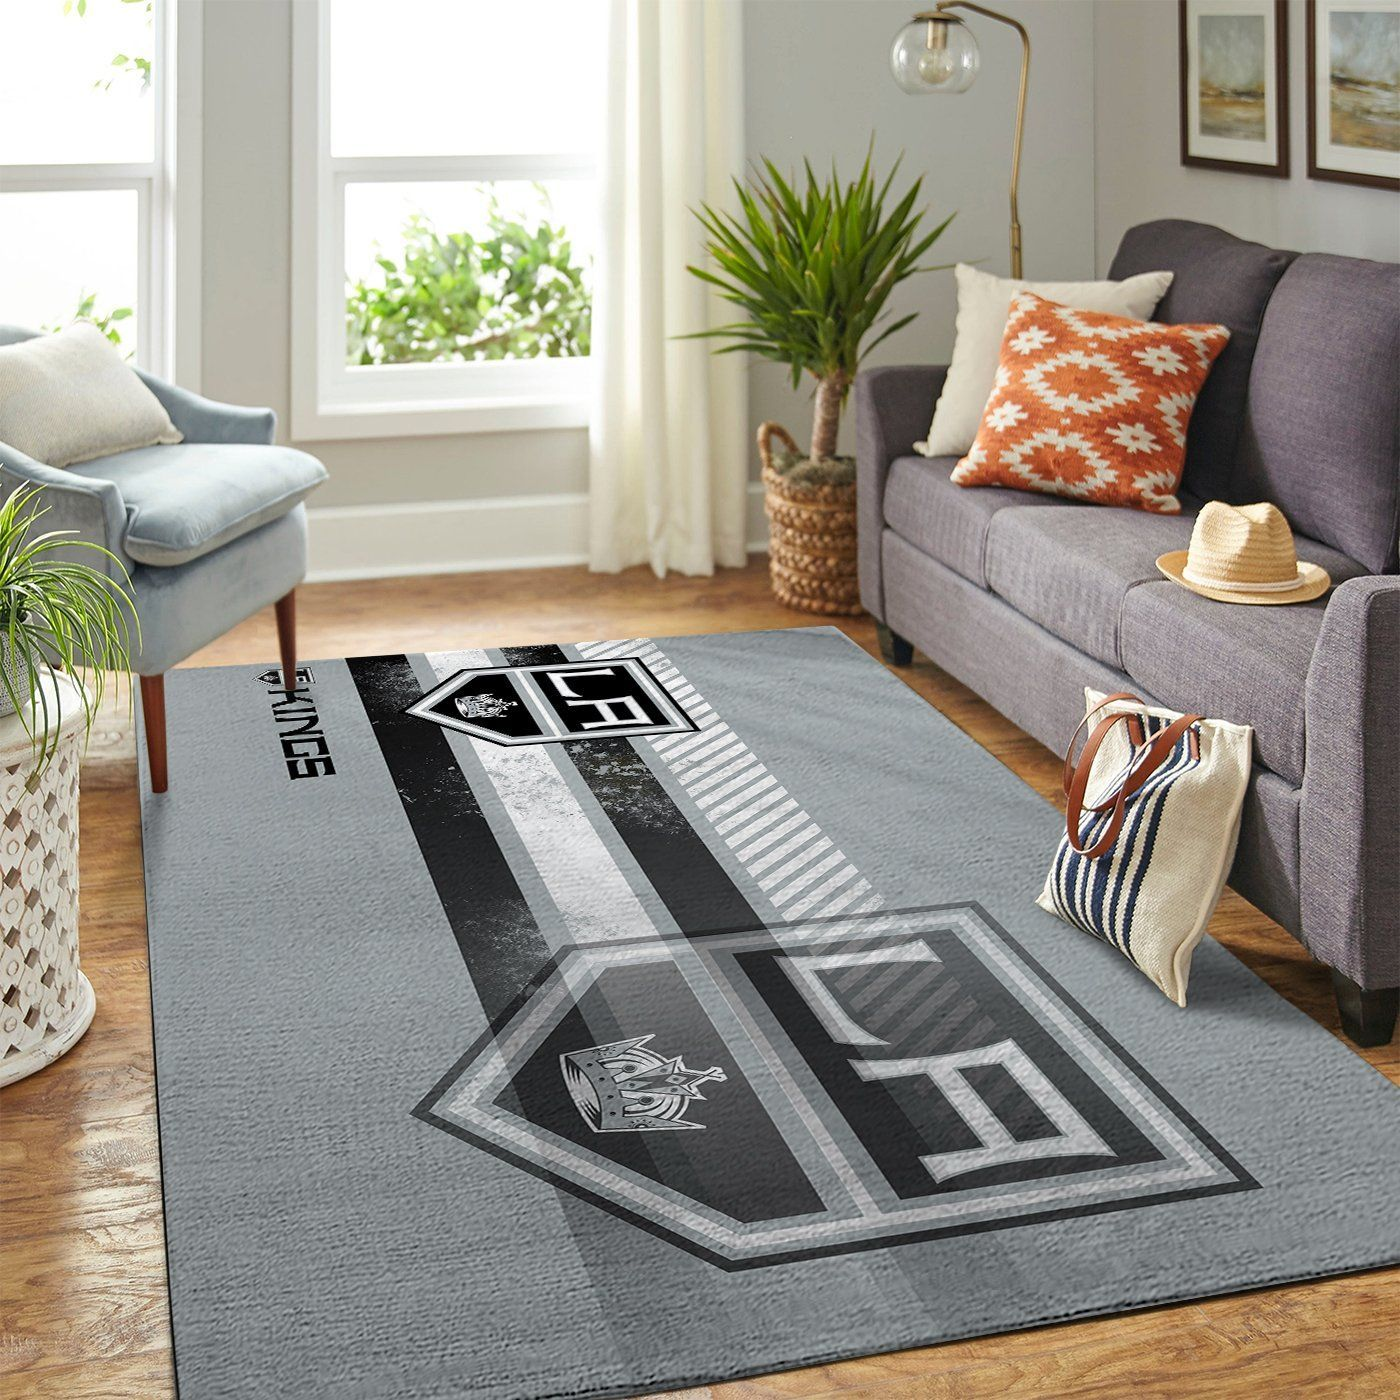 Amazon Los Angeles Kings Living Room Area No3615 Rug